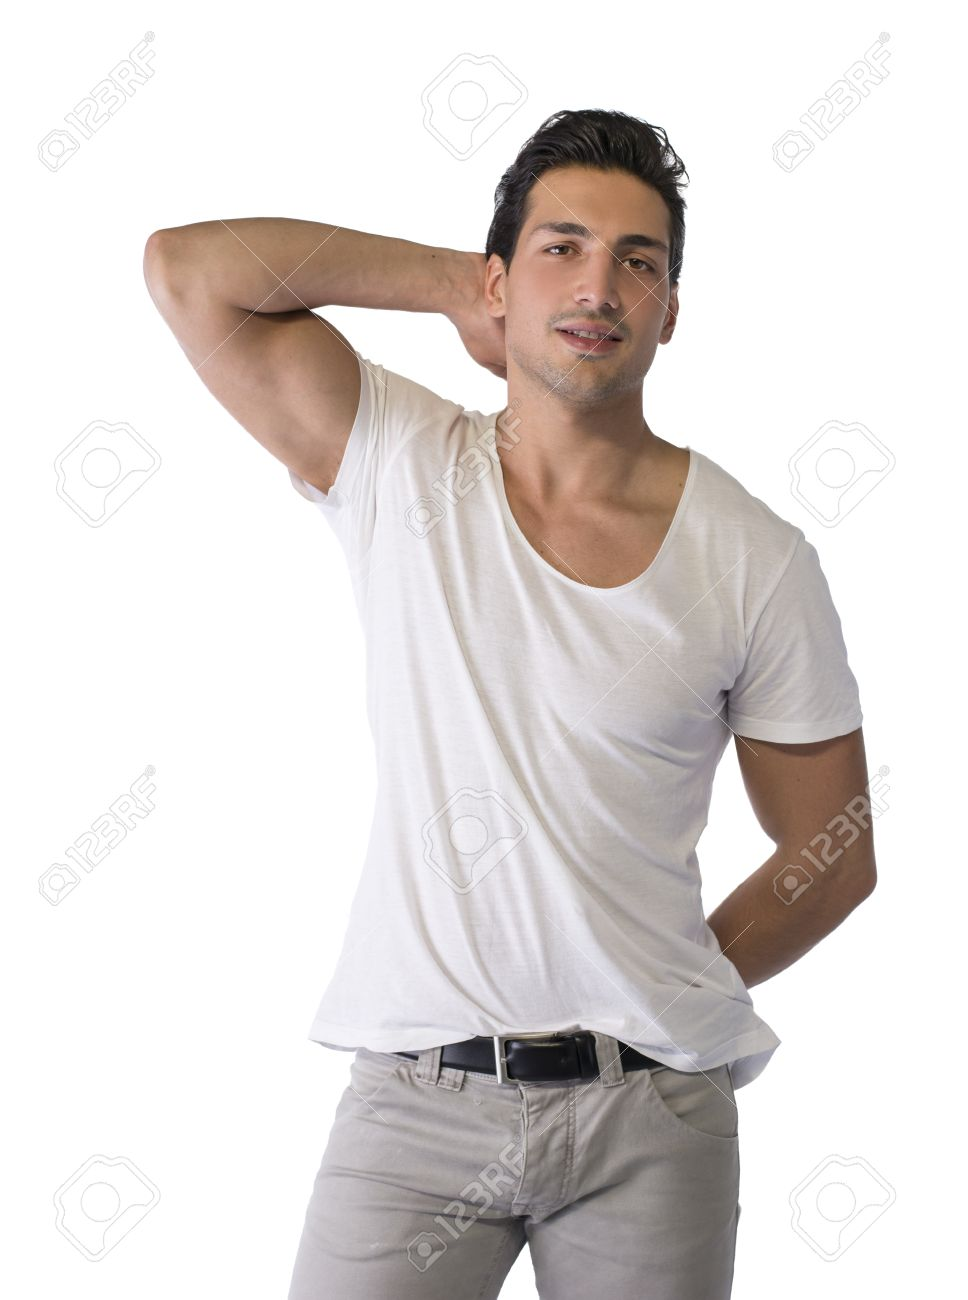 Brown Eyed Black Haired Latin Man Standing On White Background